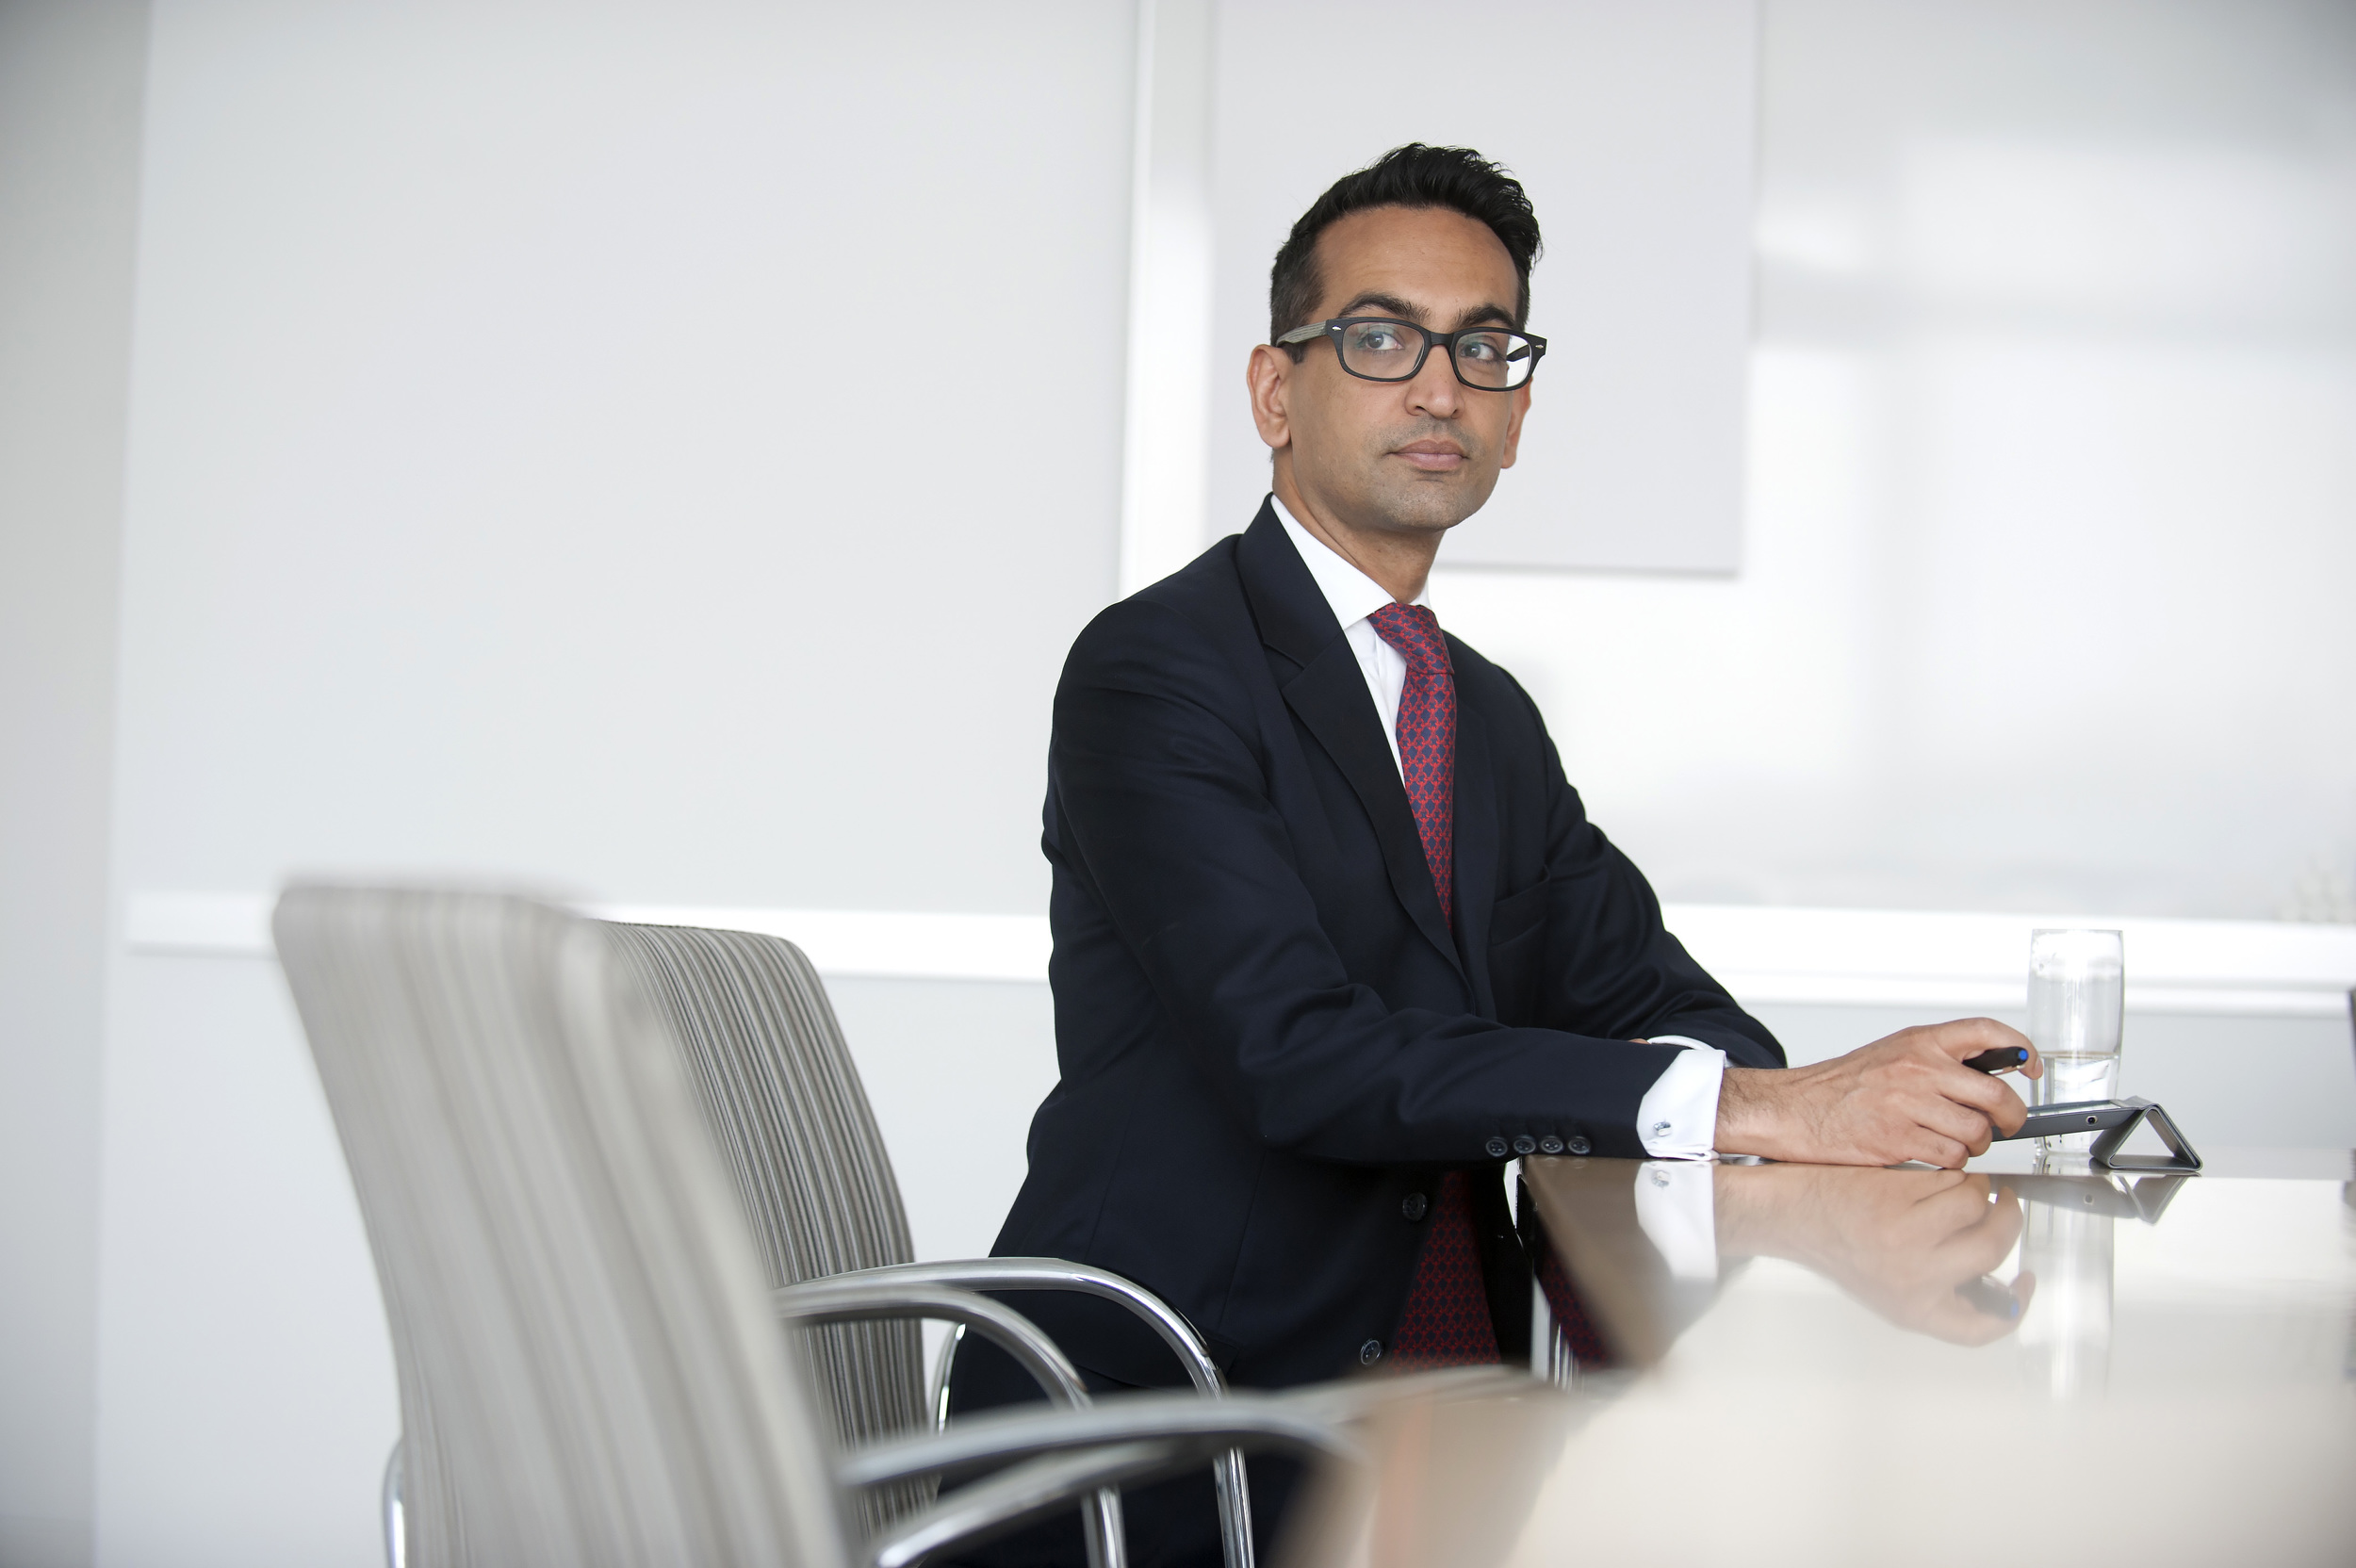 Corporate portrait of a lawyer in a suit sitting looking away from camera